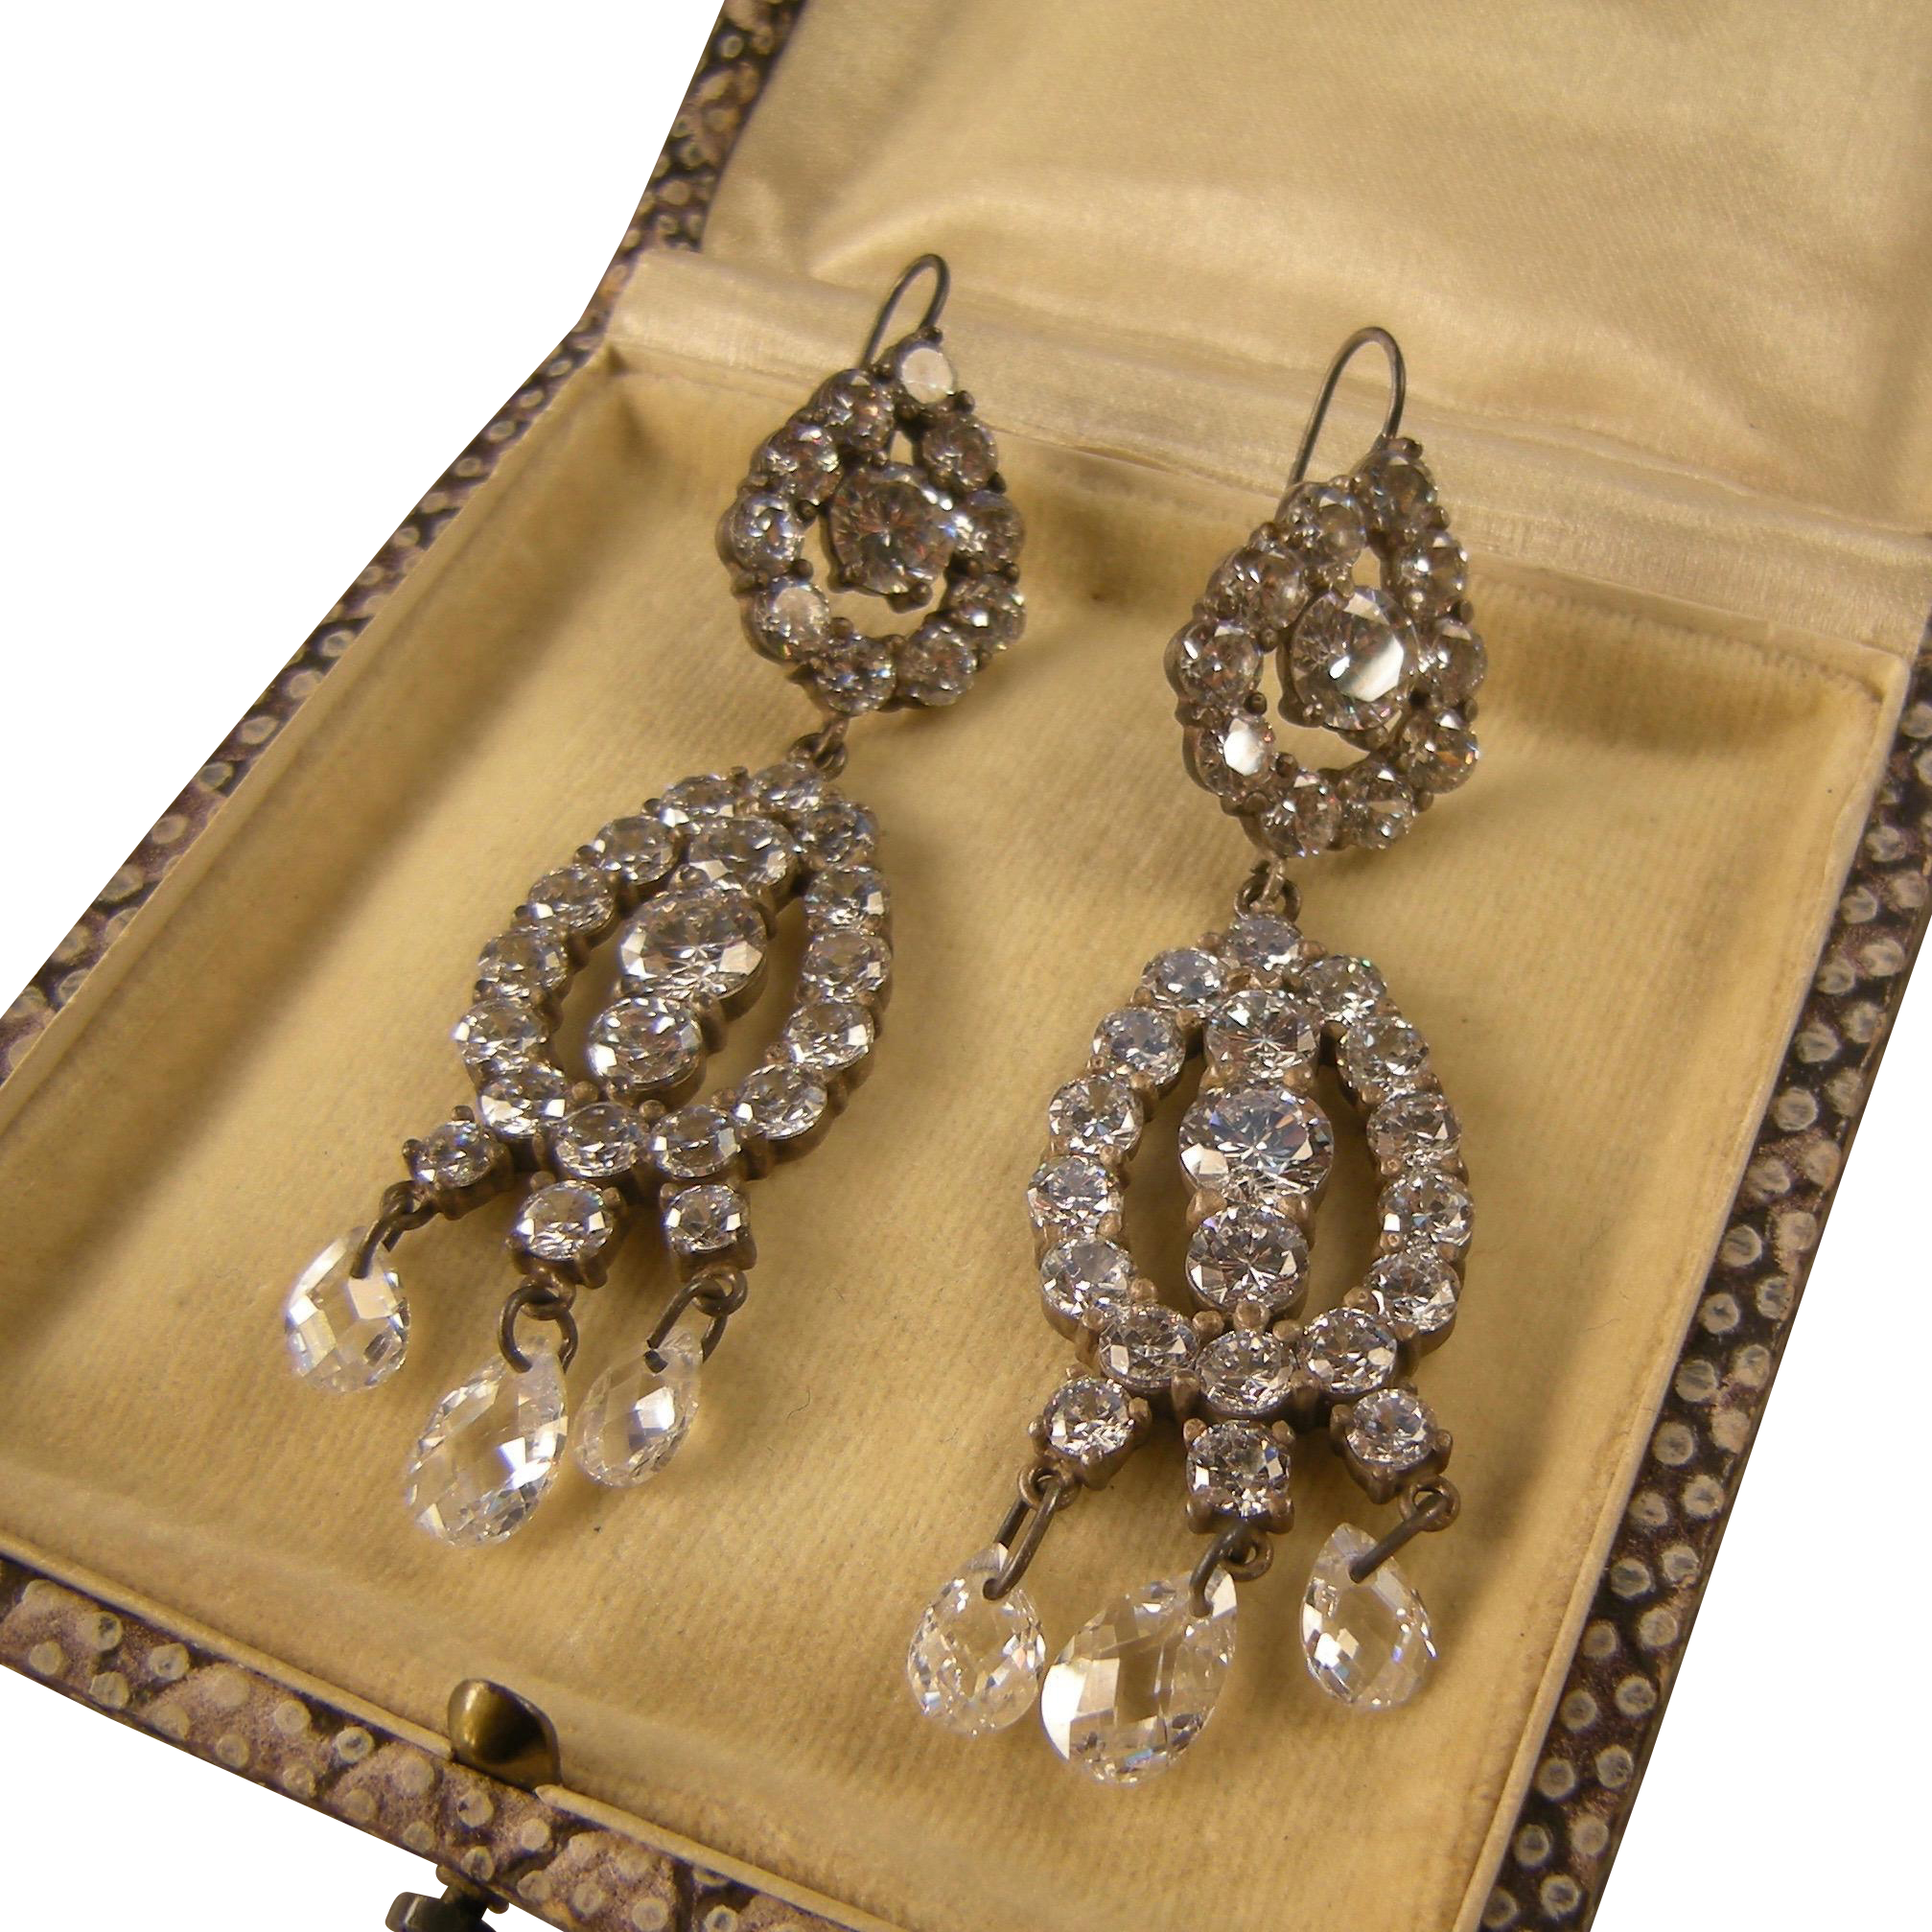 Radiant Rhinestone Crystals Chandelier Earrings, Sterling Silver, Spectacular Vintage